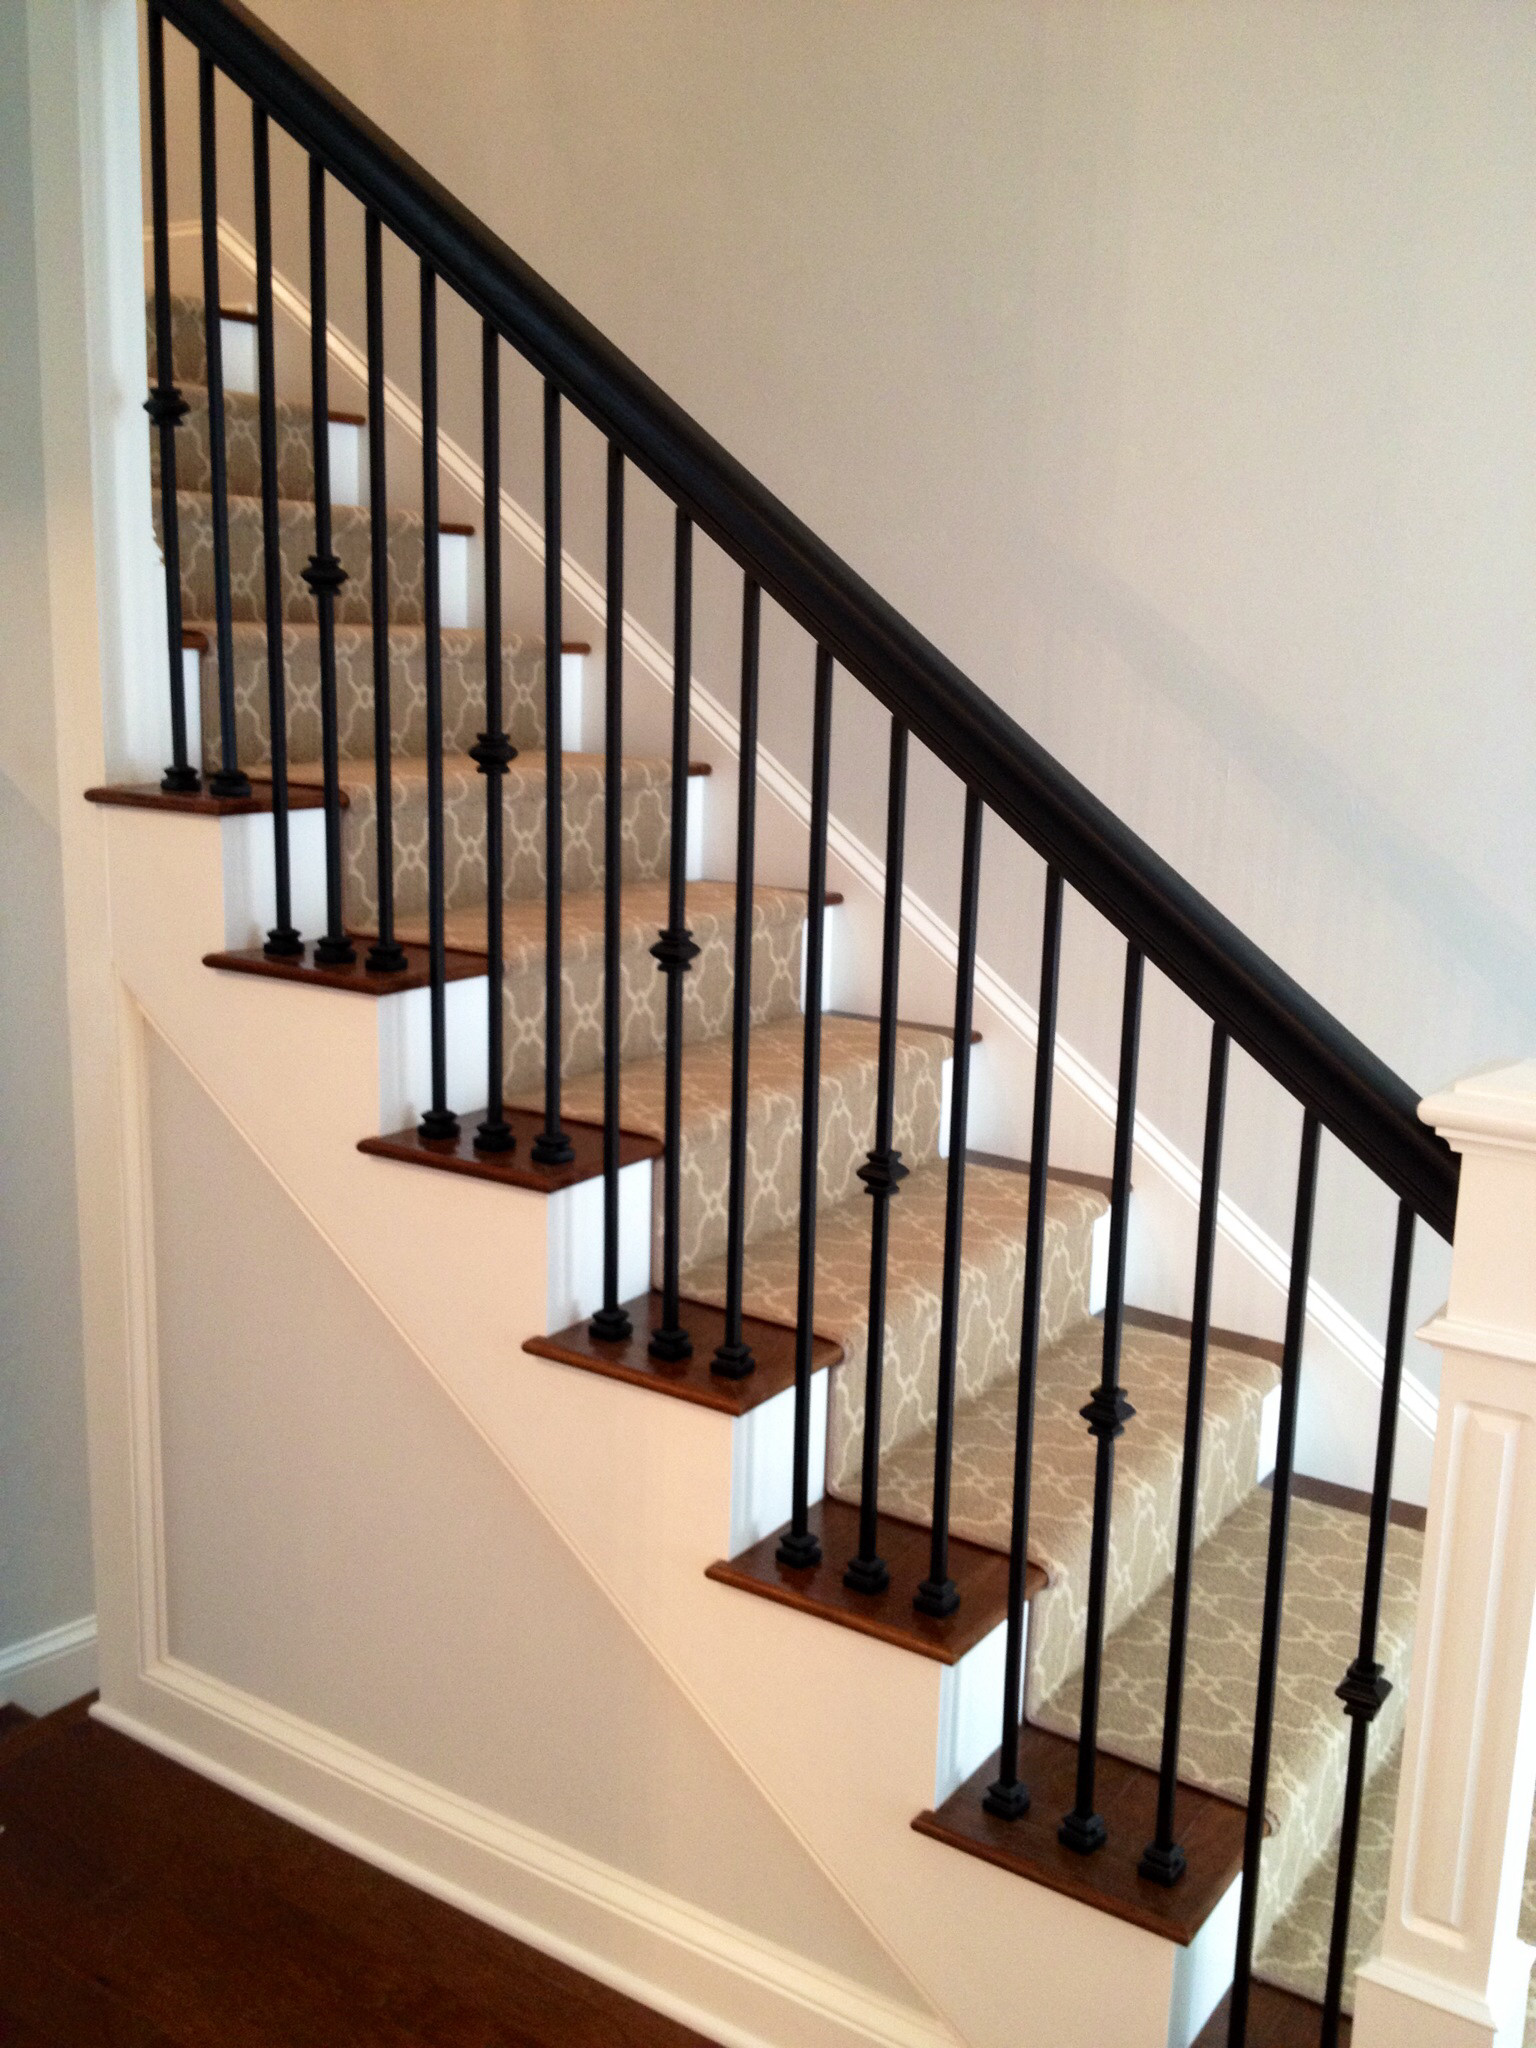 Best ideas about Indoor Stair Railings . Save or Pin Railing Wondrous Indoor Stair Railing Kits For Dazzling Now.